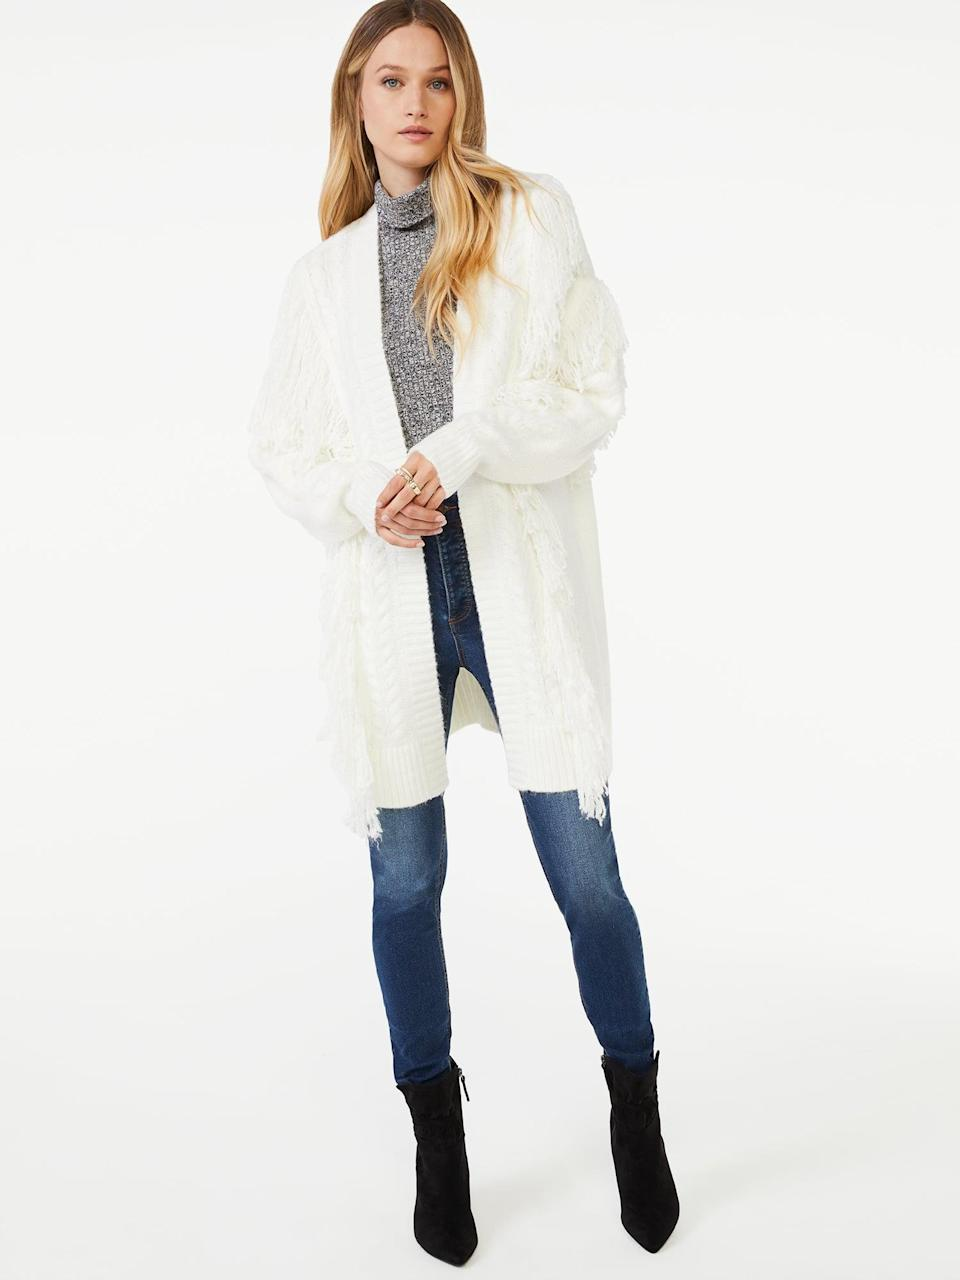 <p>The styling opportunities for this <span>Scoop Women's Fringe Cardigan Sweater with Belt</span> ($38) are endless. </p>